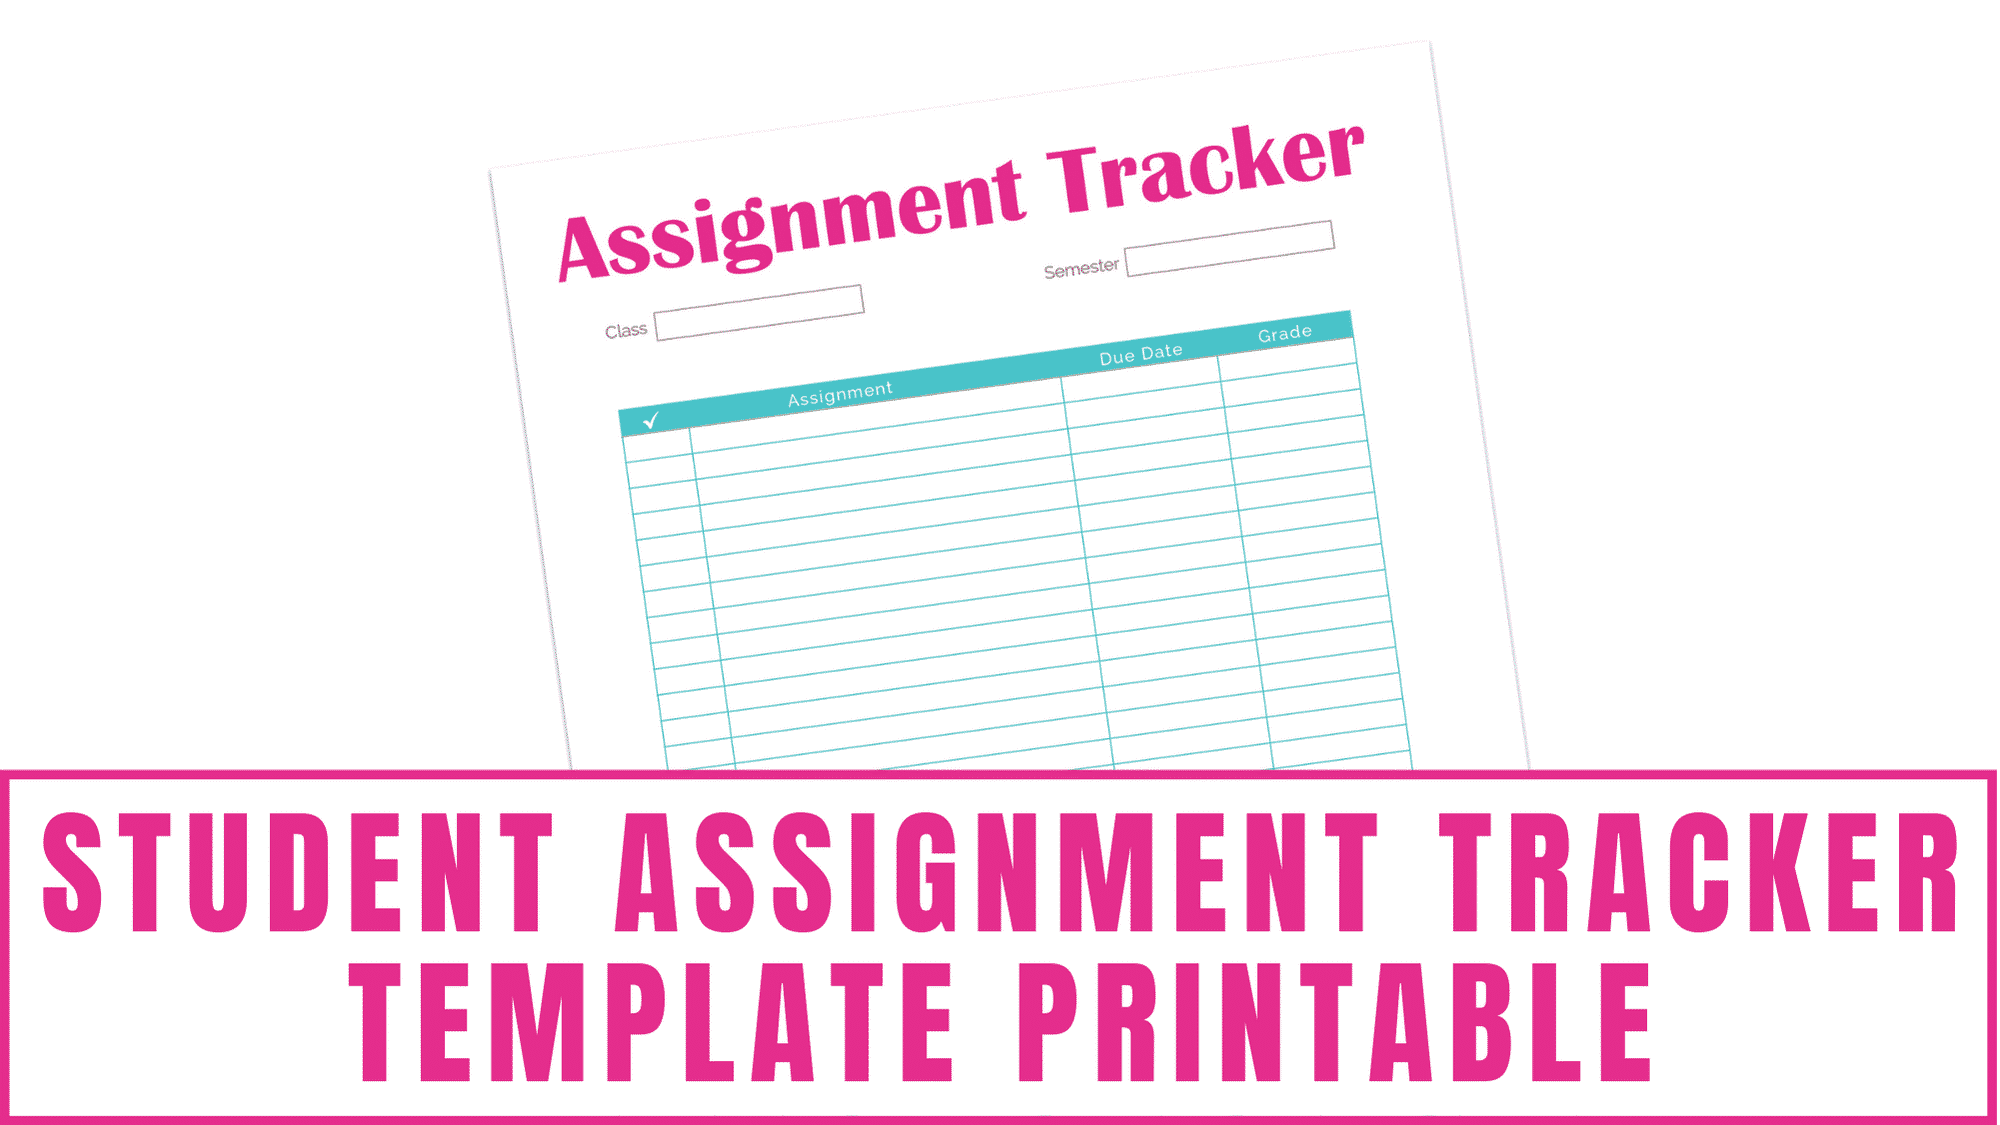 Tired of your kid forgetting their homework? Maybe you are a student and can't seem to remember all of your assignments? Both will benefit from this student assignment tracker template printable which will allow you to track your homework and your grades.